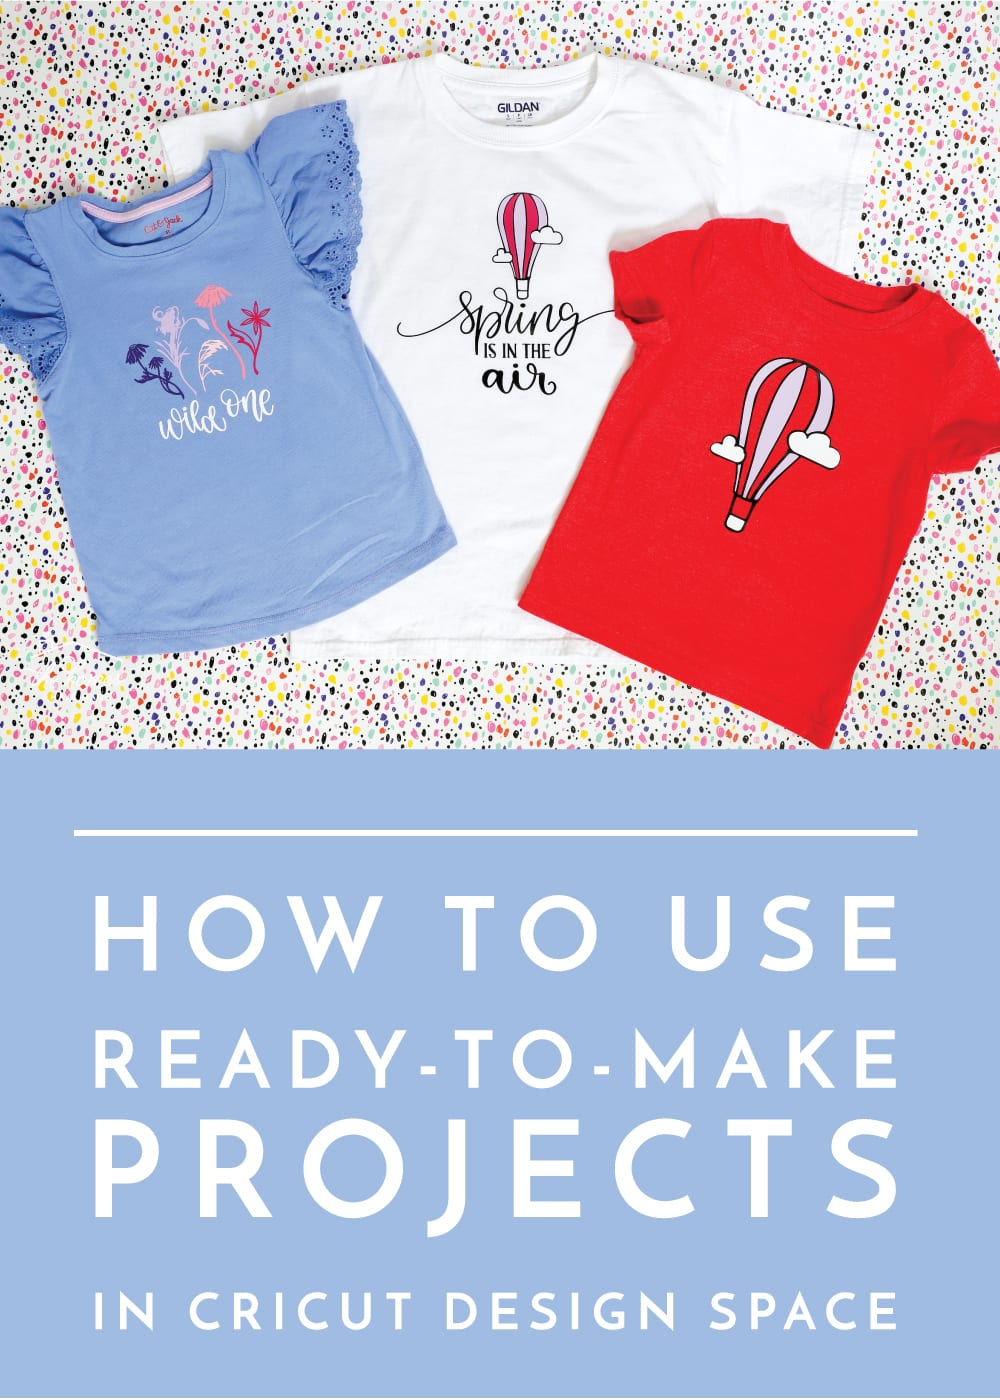 Get up and running quickly on your Cricut machine with easy Ready-to-Make projects - this tutorial shows you exactly how to do it!